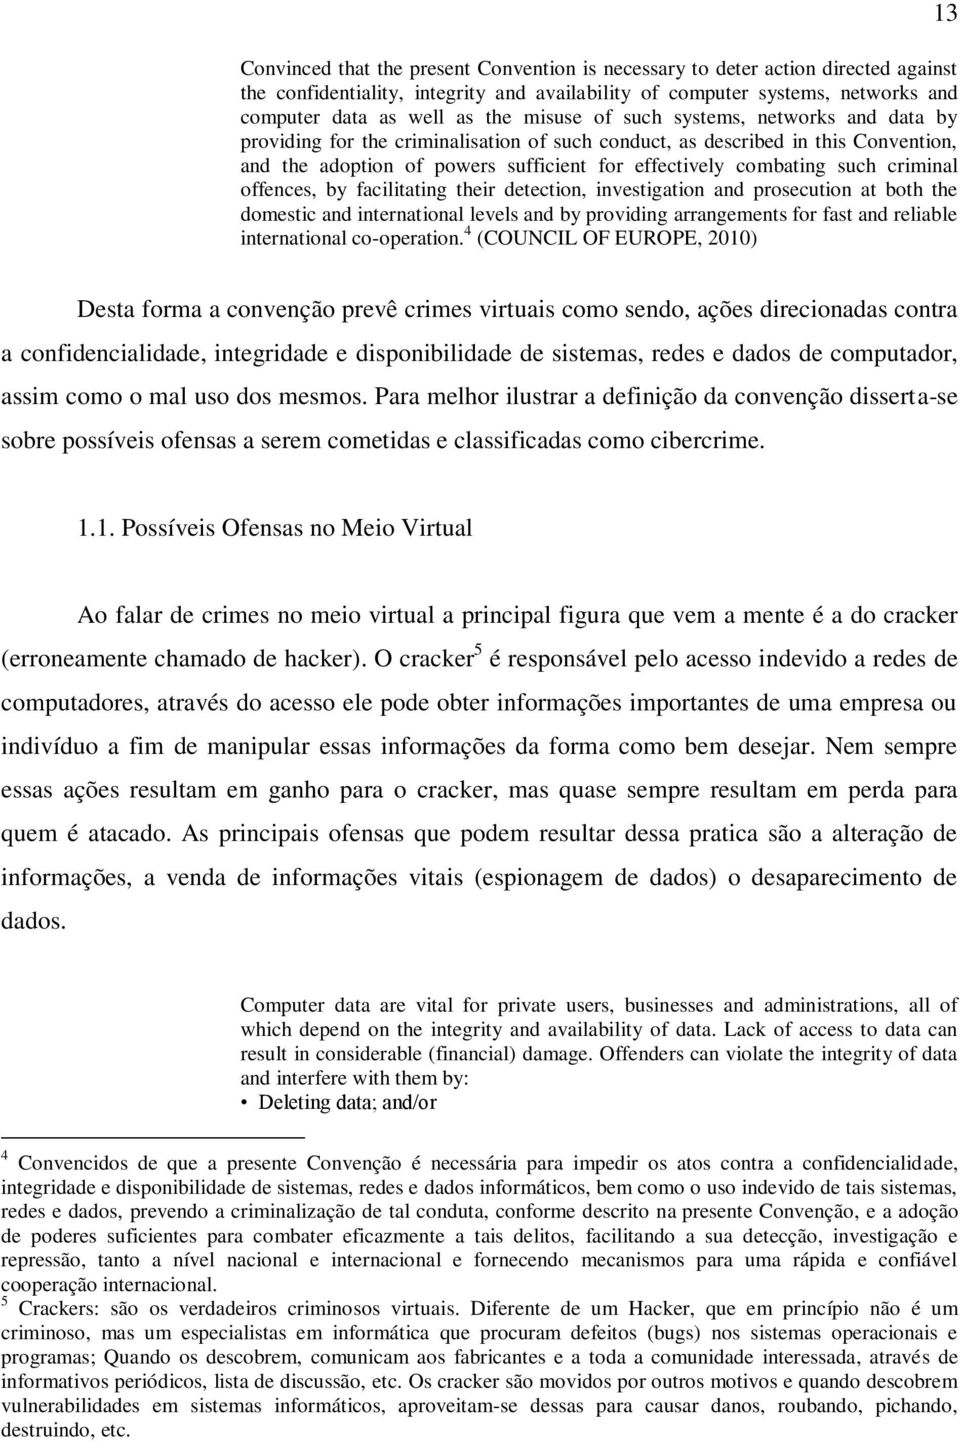 criminal offences, by facilitating their detection, investigation and prosecution at both the domestic and international levels and by providing arrangements for fast and reliable international